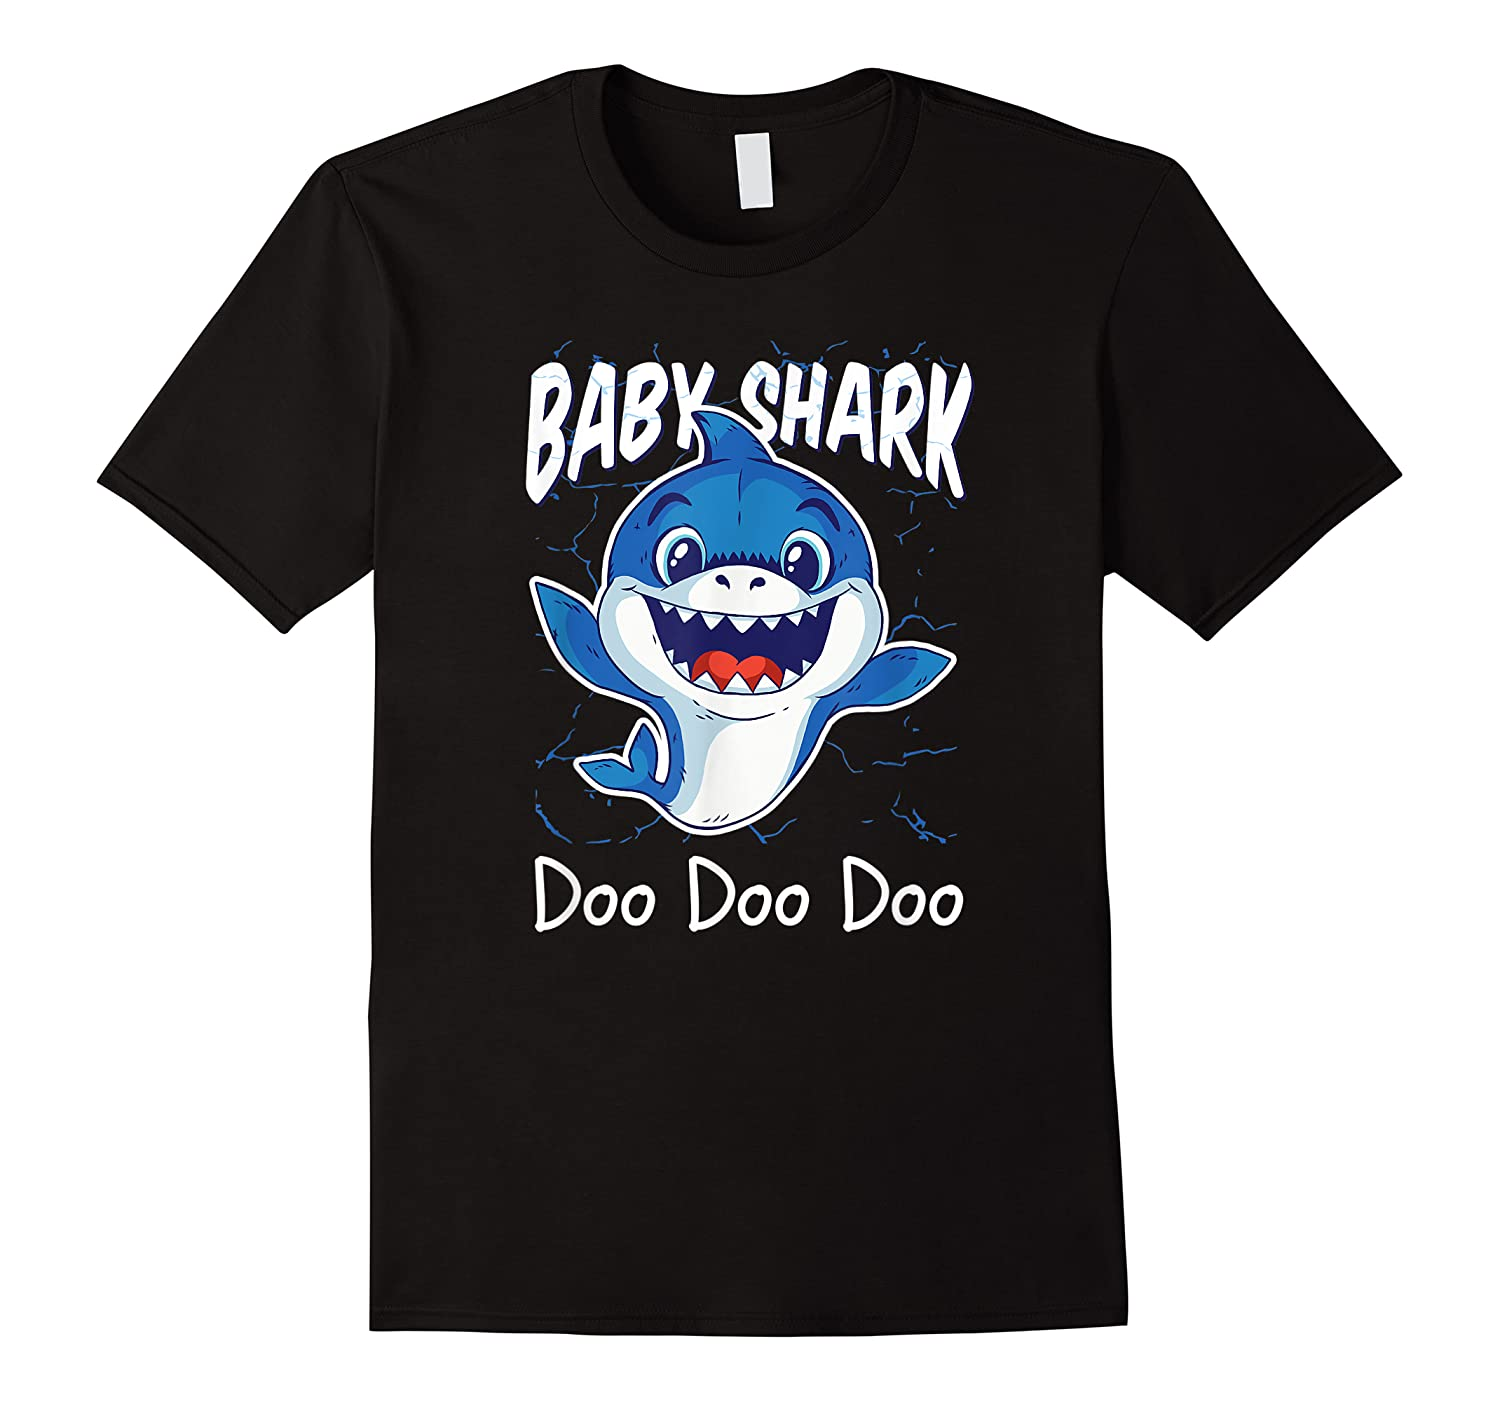 Baby Shark Doo Doo Birthday Party Gifts Girl Boy Out T-shirt